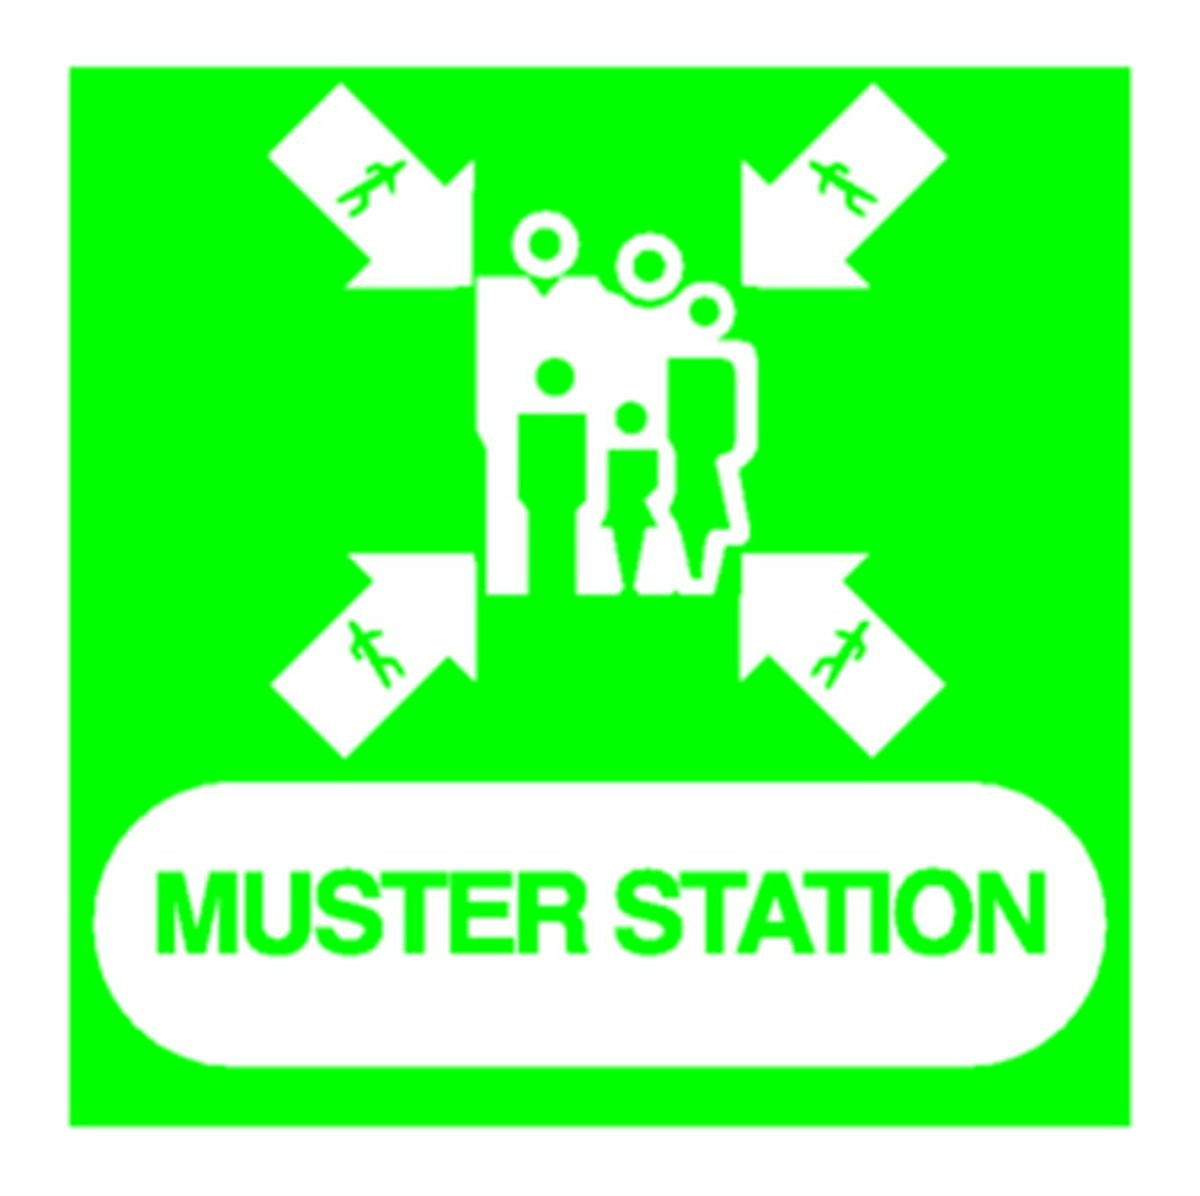 Panneau Muster station